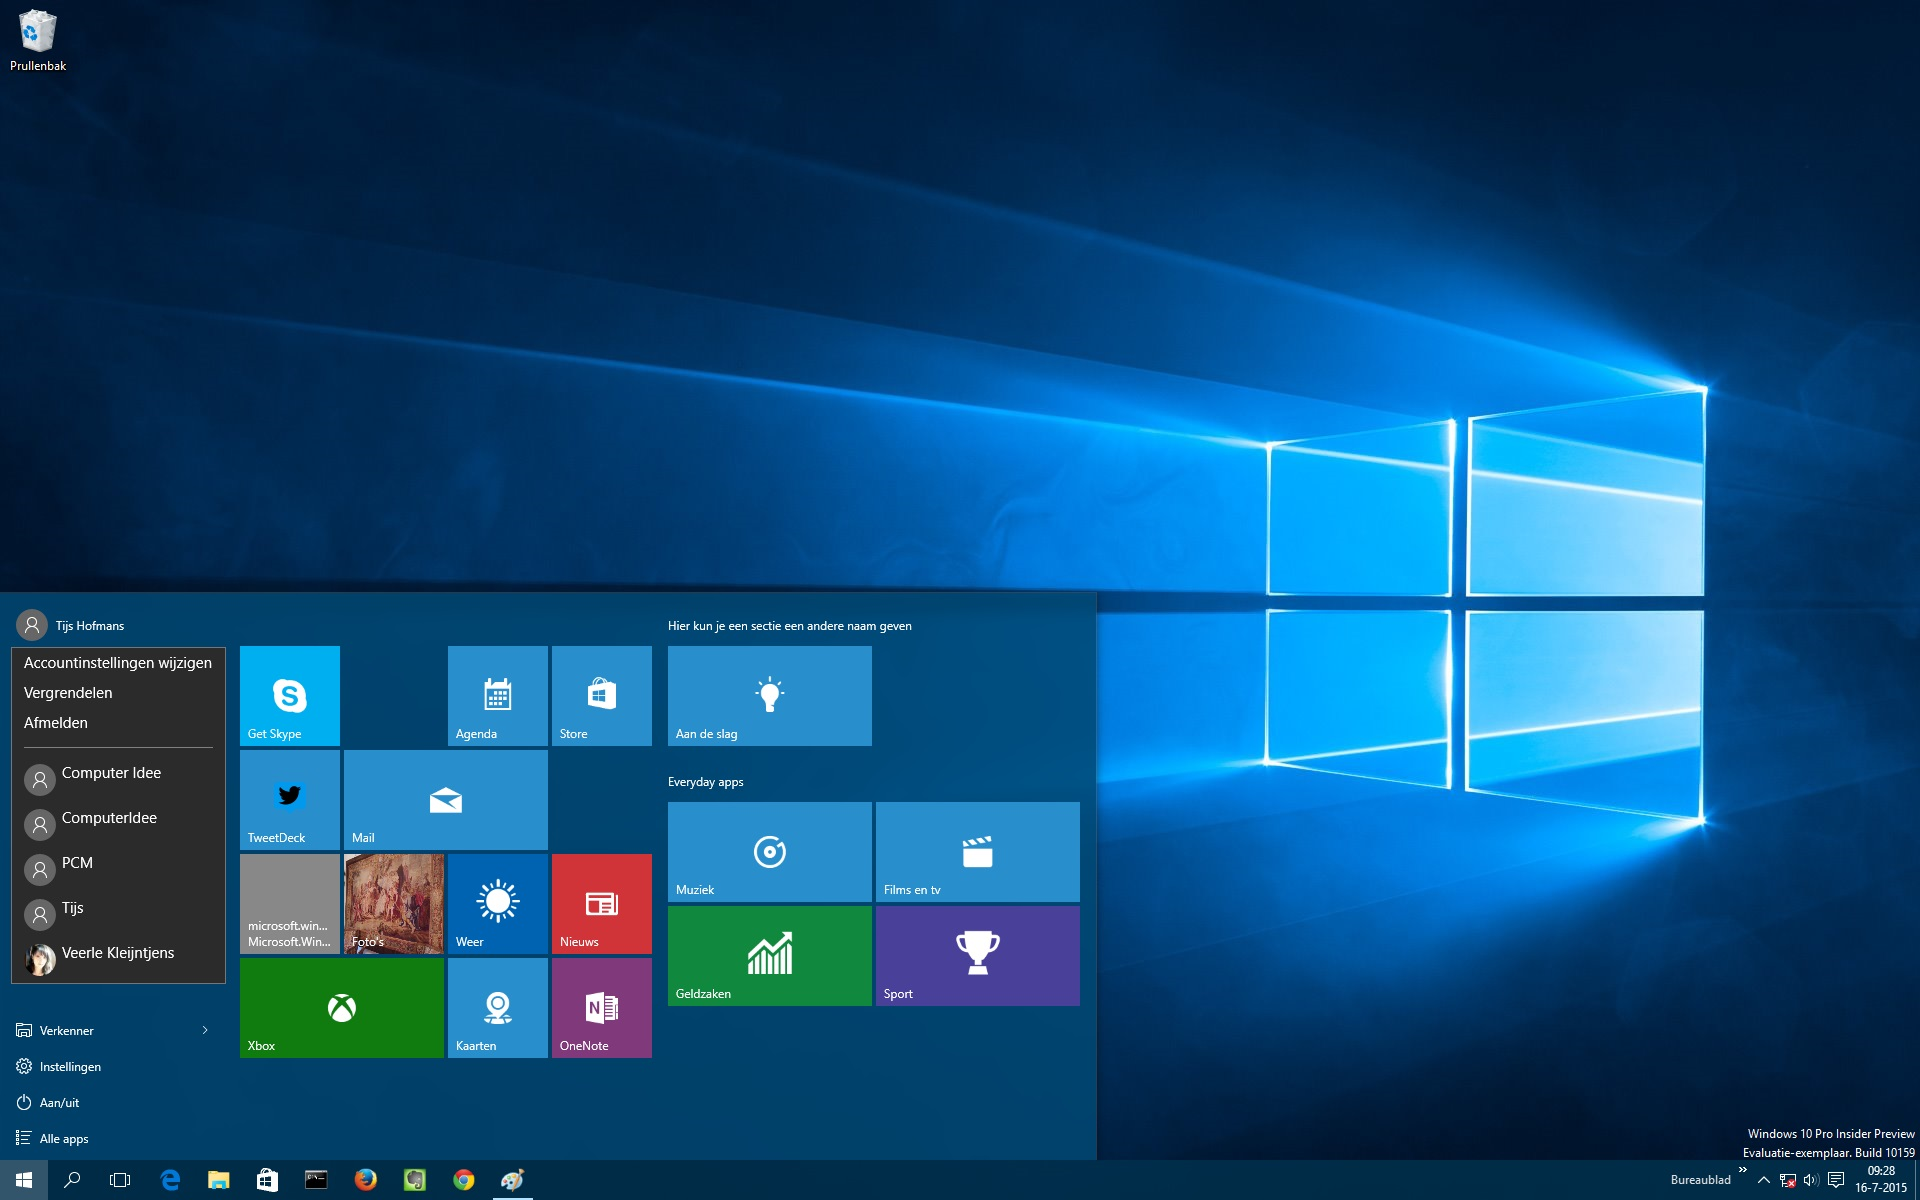 Alles over het nieuwe startmenu van windows 10 computer idee for Windows 8 bureaublad